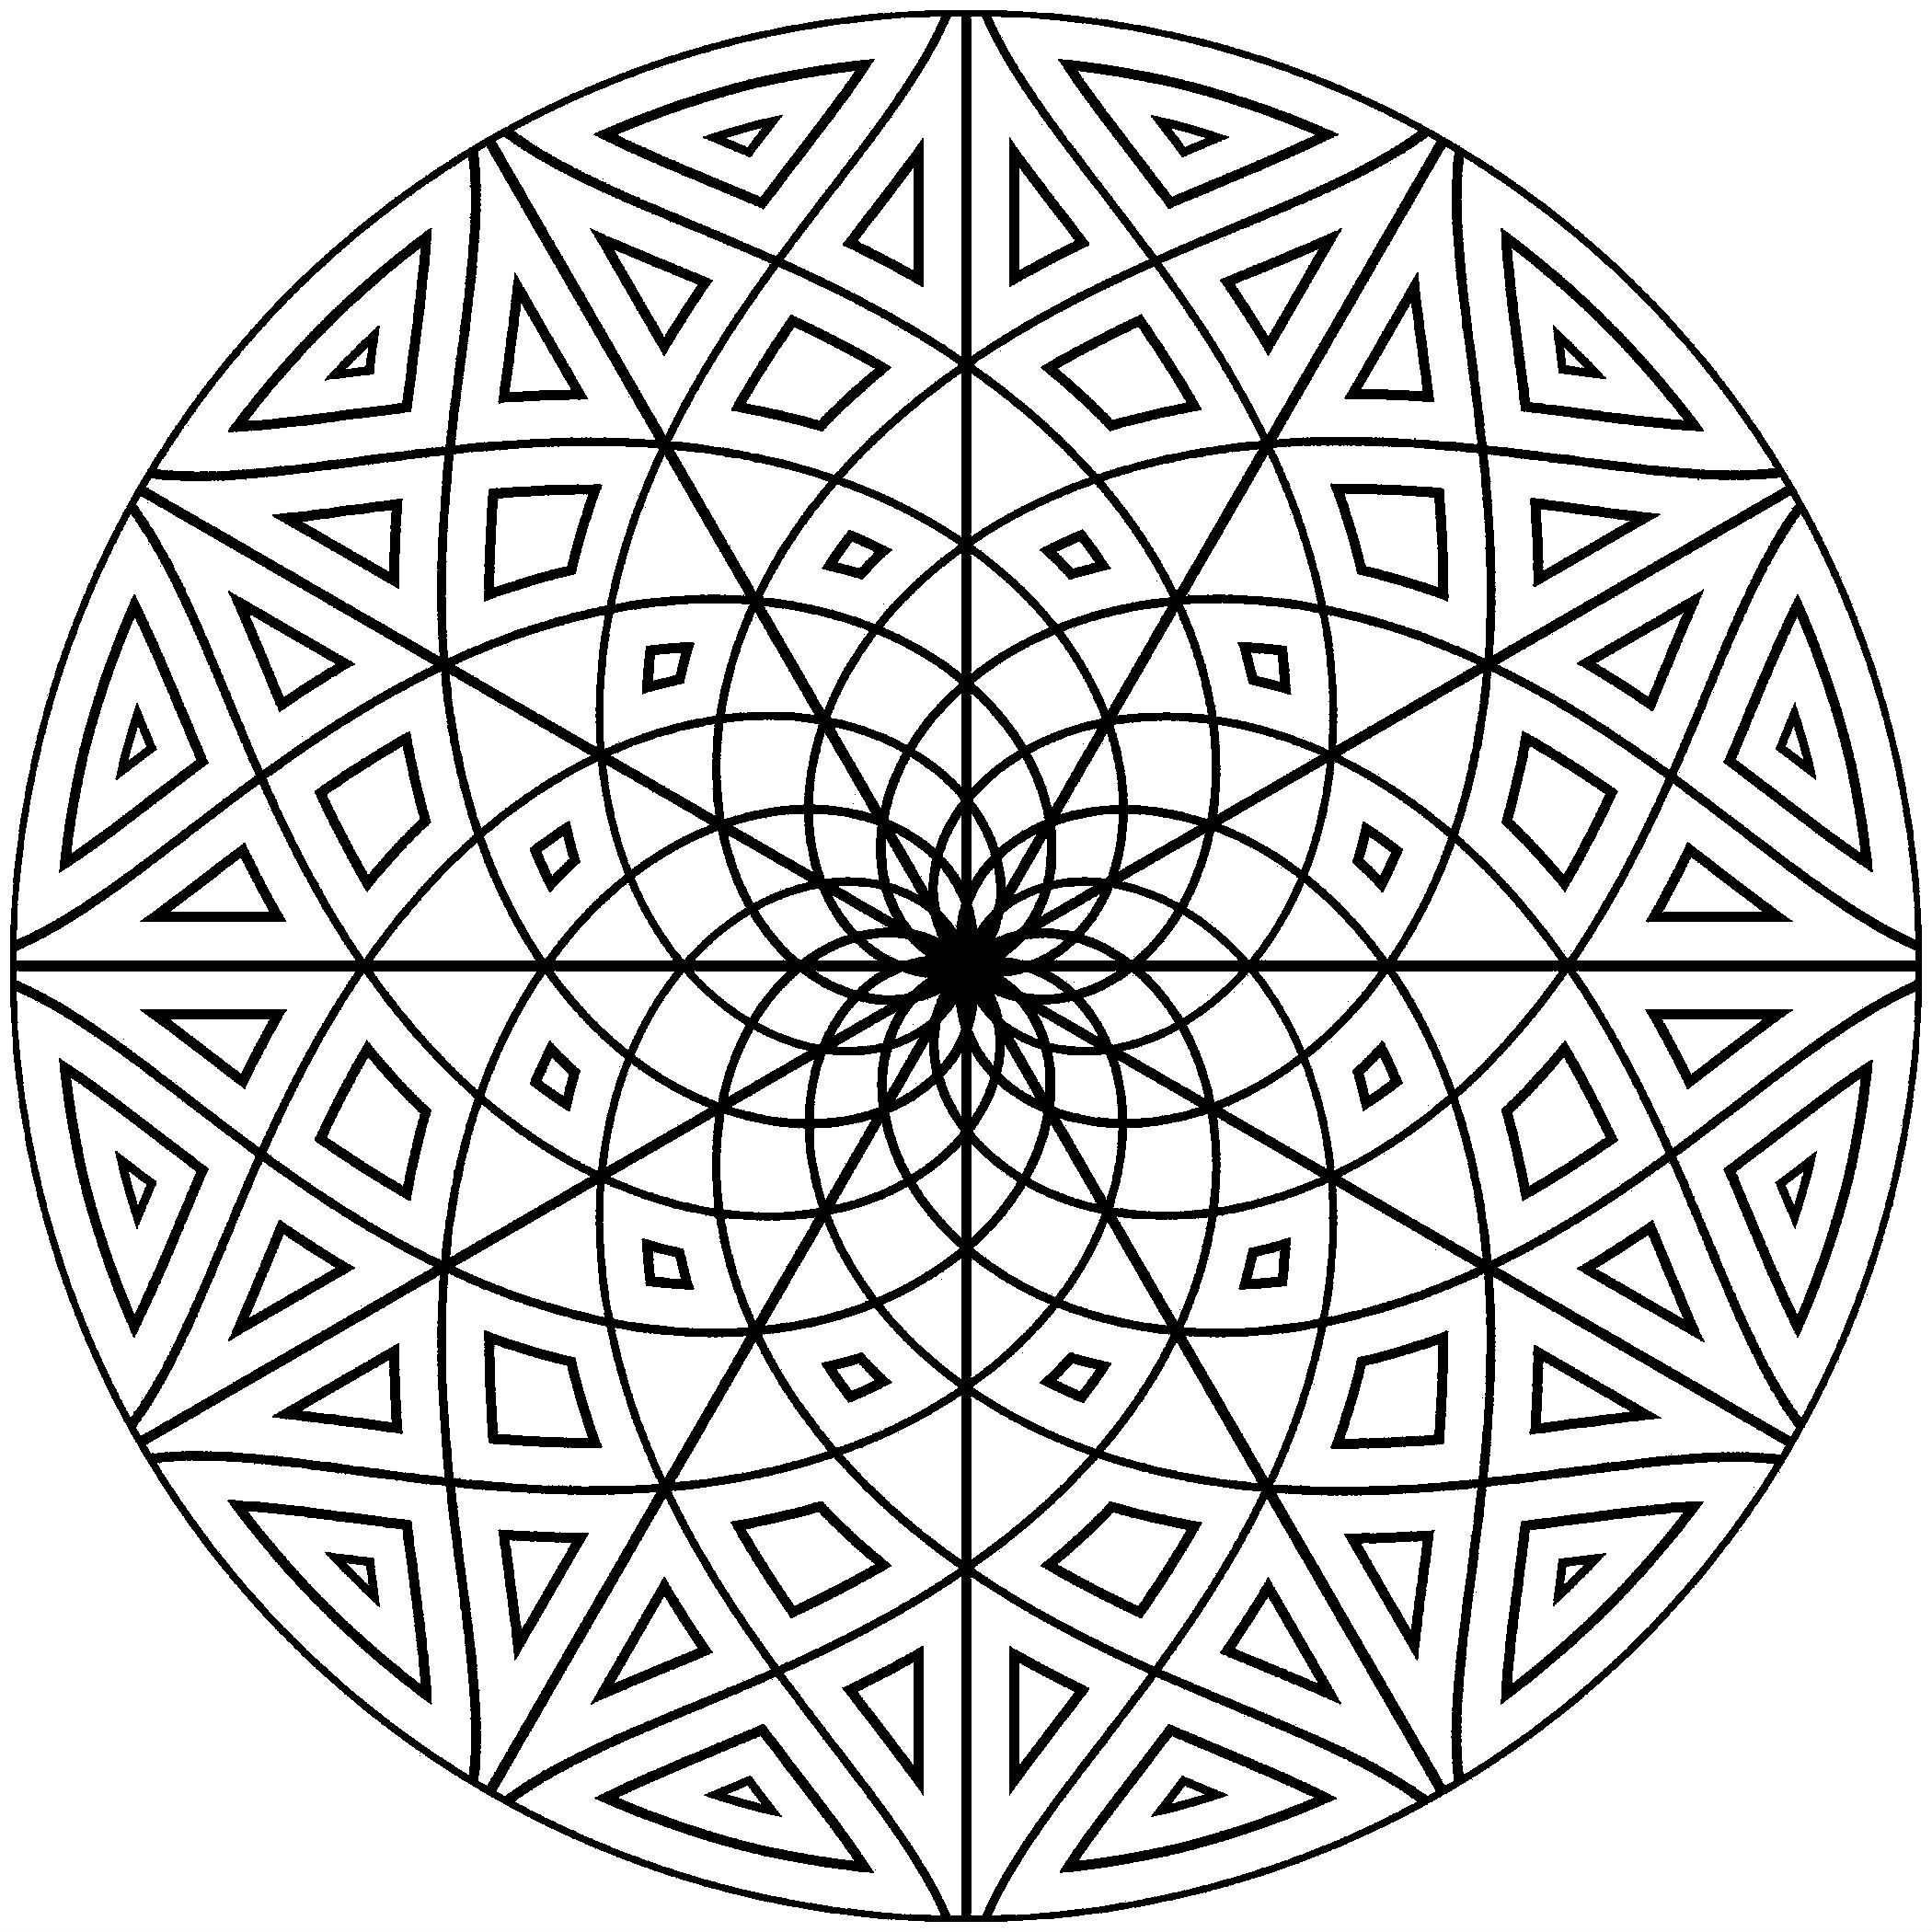 Mandalas Hard Coloring Pages For Kids Fno Printable Mandalas Coloring Pages For Kids Geometri Wallpaper Iphone